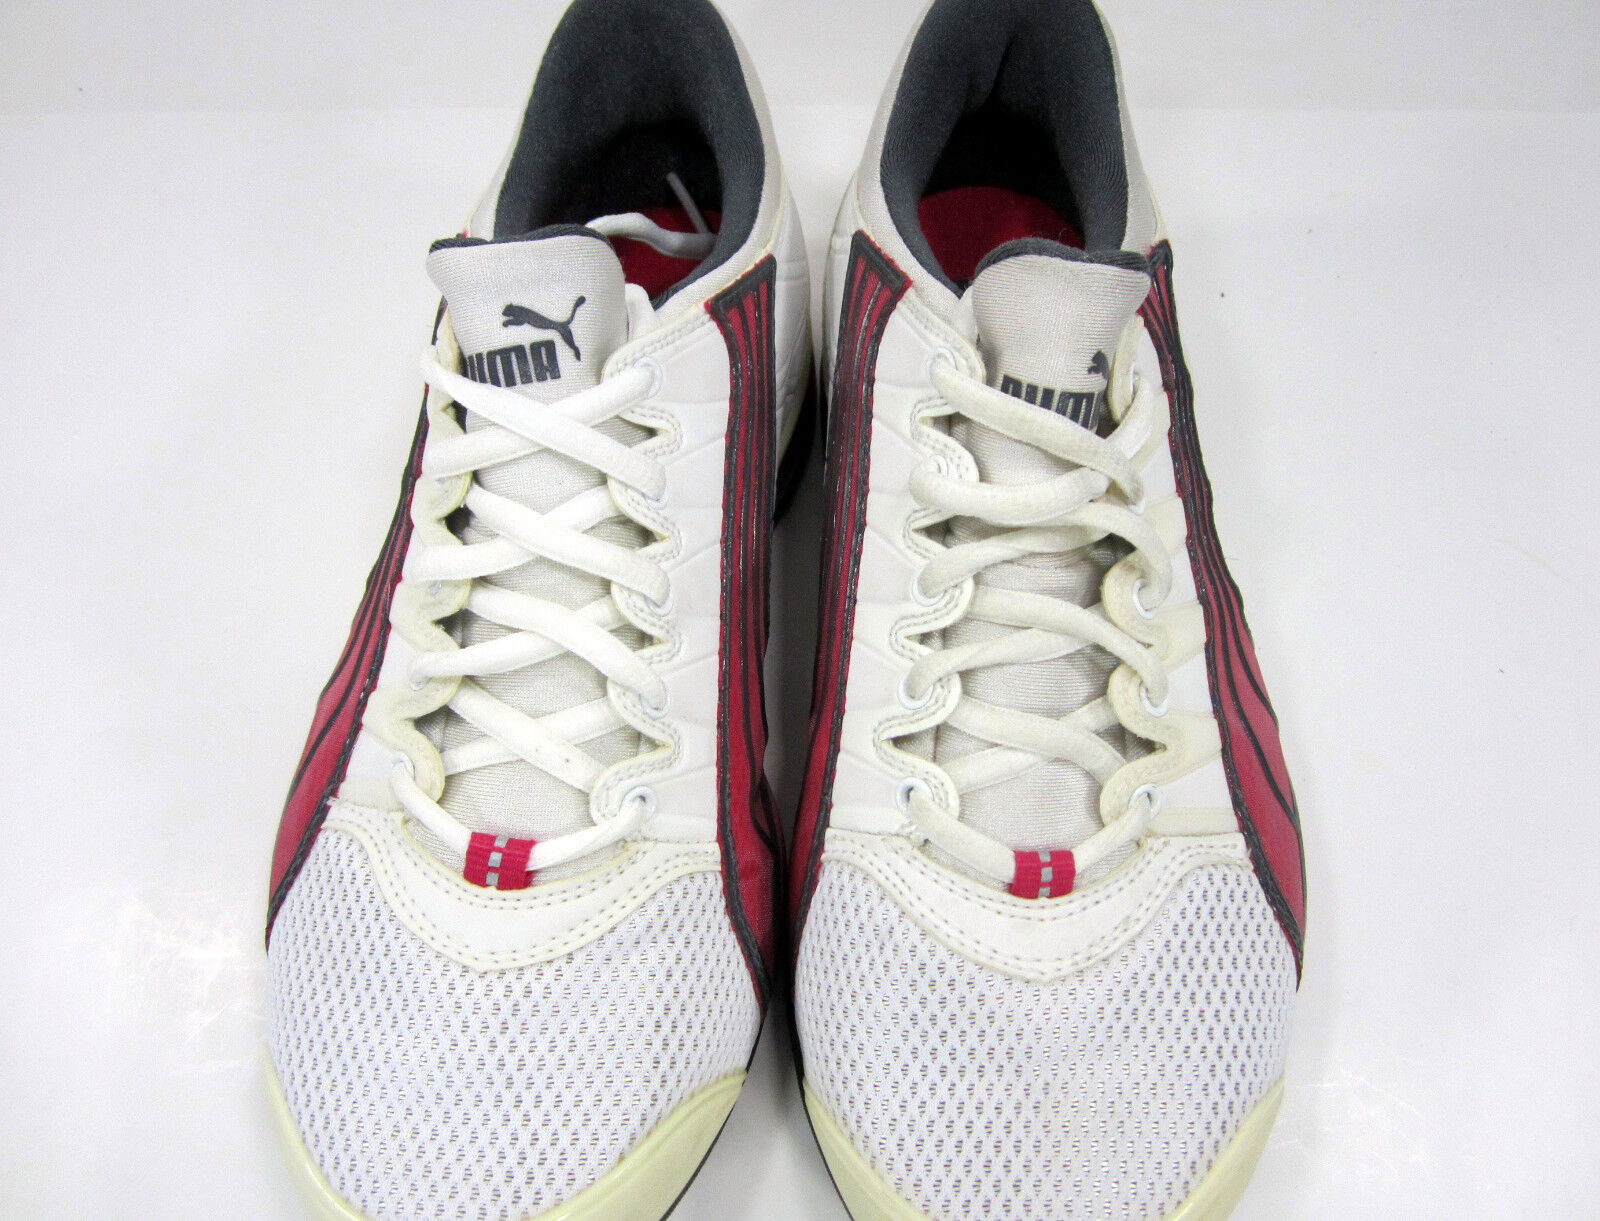 Puma Schuhes ROT Athletic Sports Running Weiß/Cream/ ROT Schuhes Sneakers Damenschuhe 7 f890b3